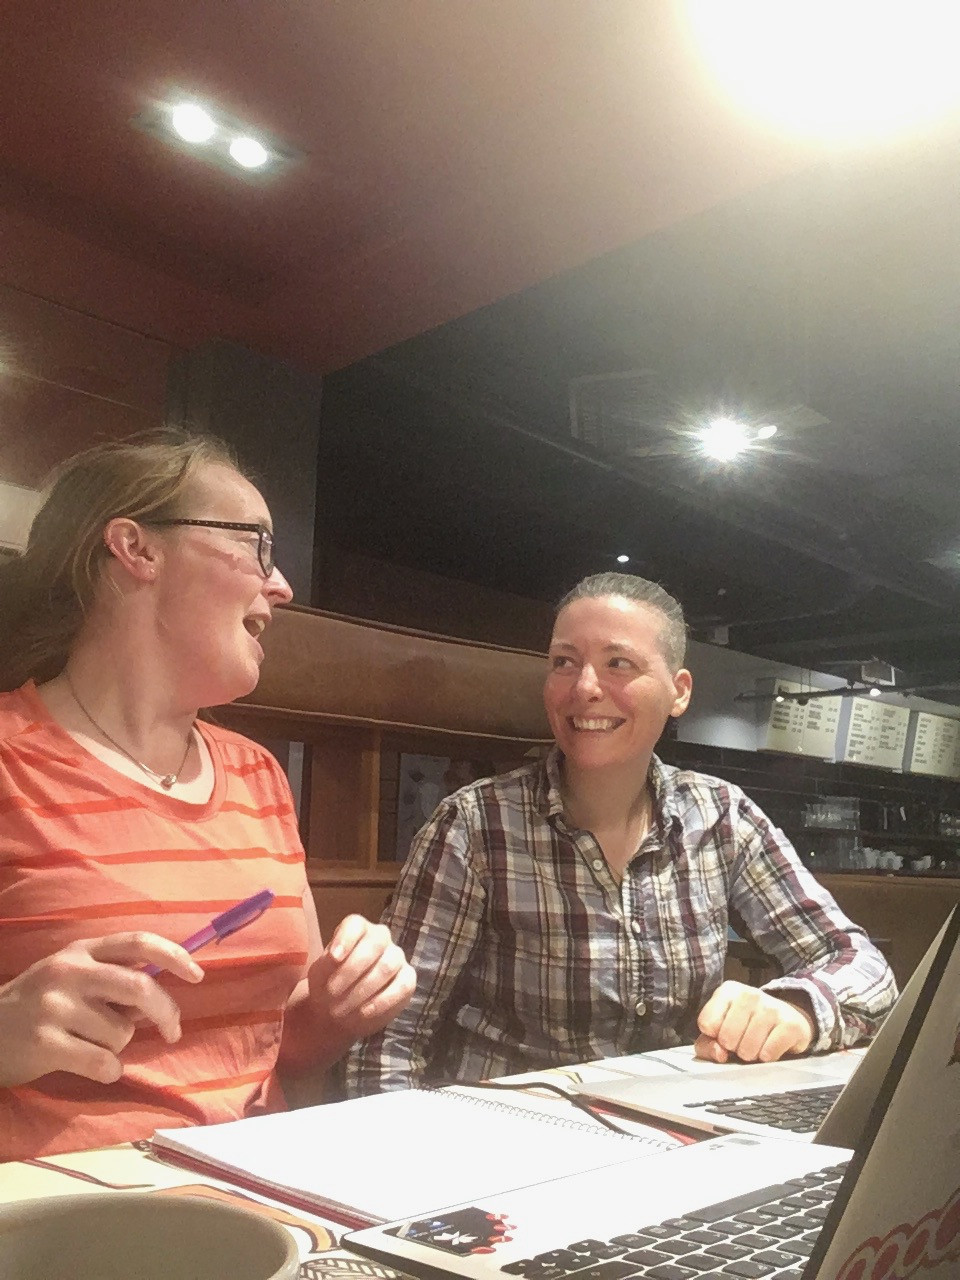 Humorous photo of Tracy and me hard at work (haha) on the website inside Tinderbox